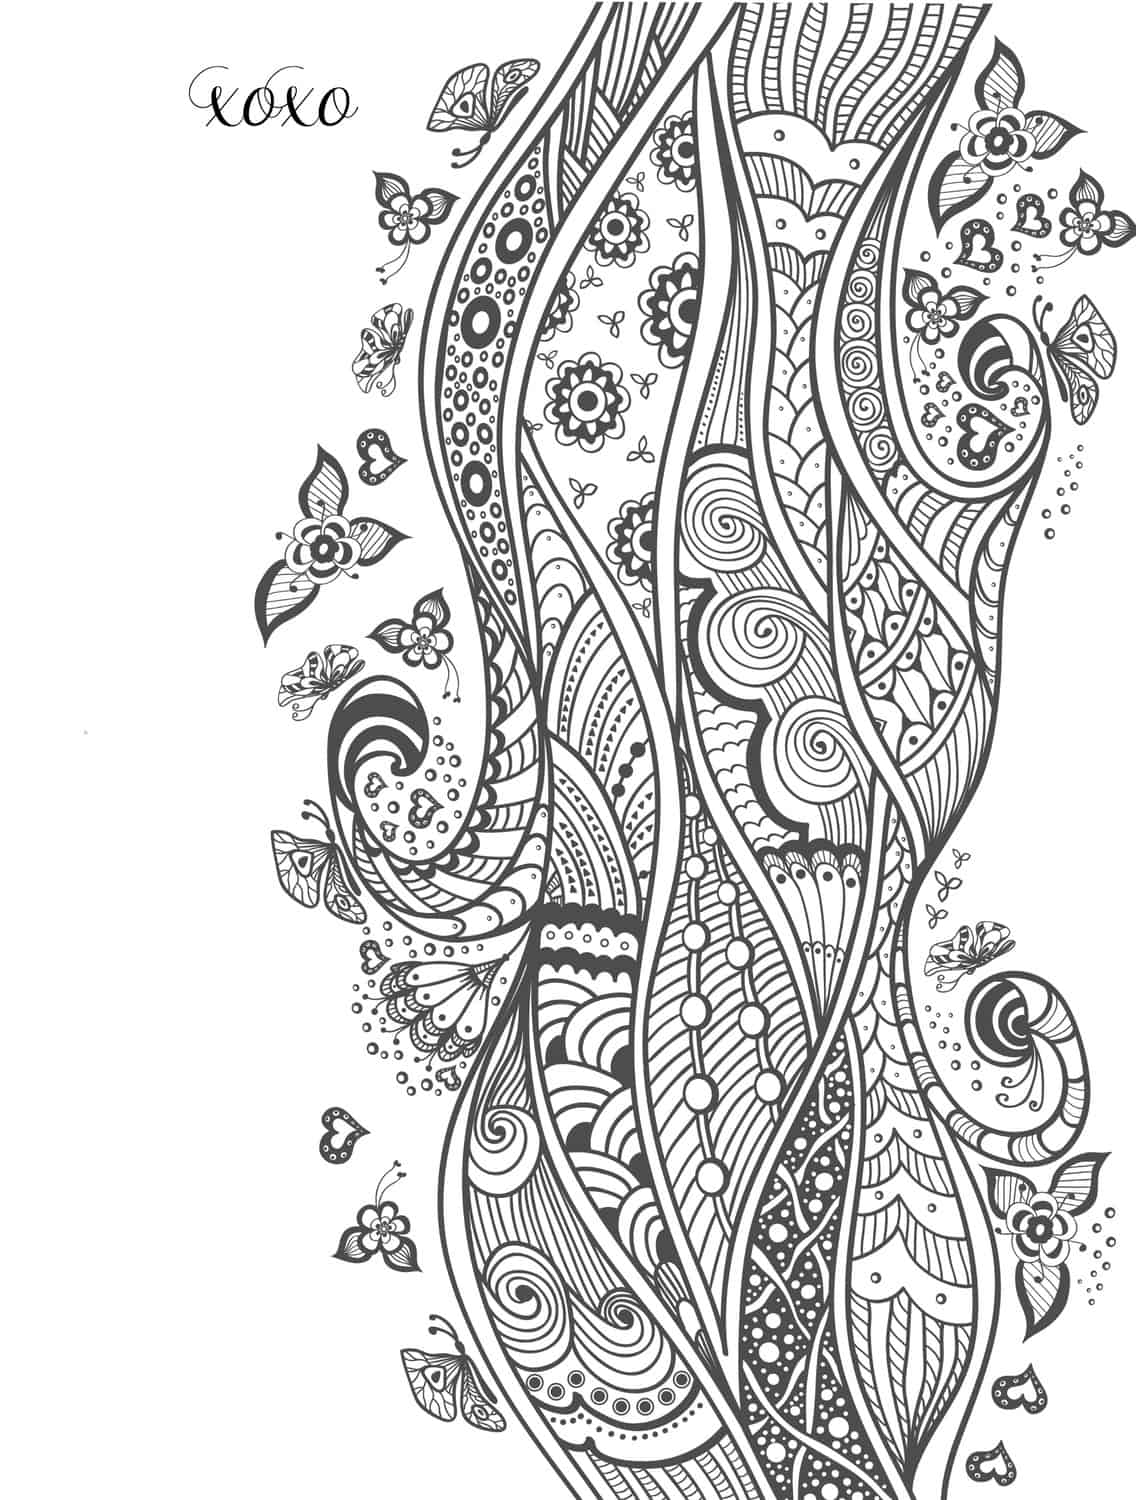 20 free printable valentines adult coloring pages - Coloring Pages Free